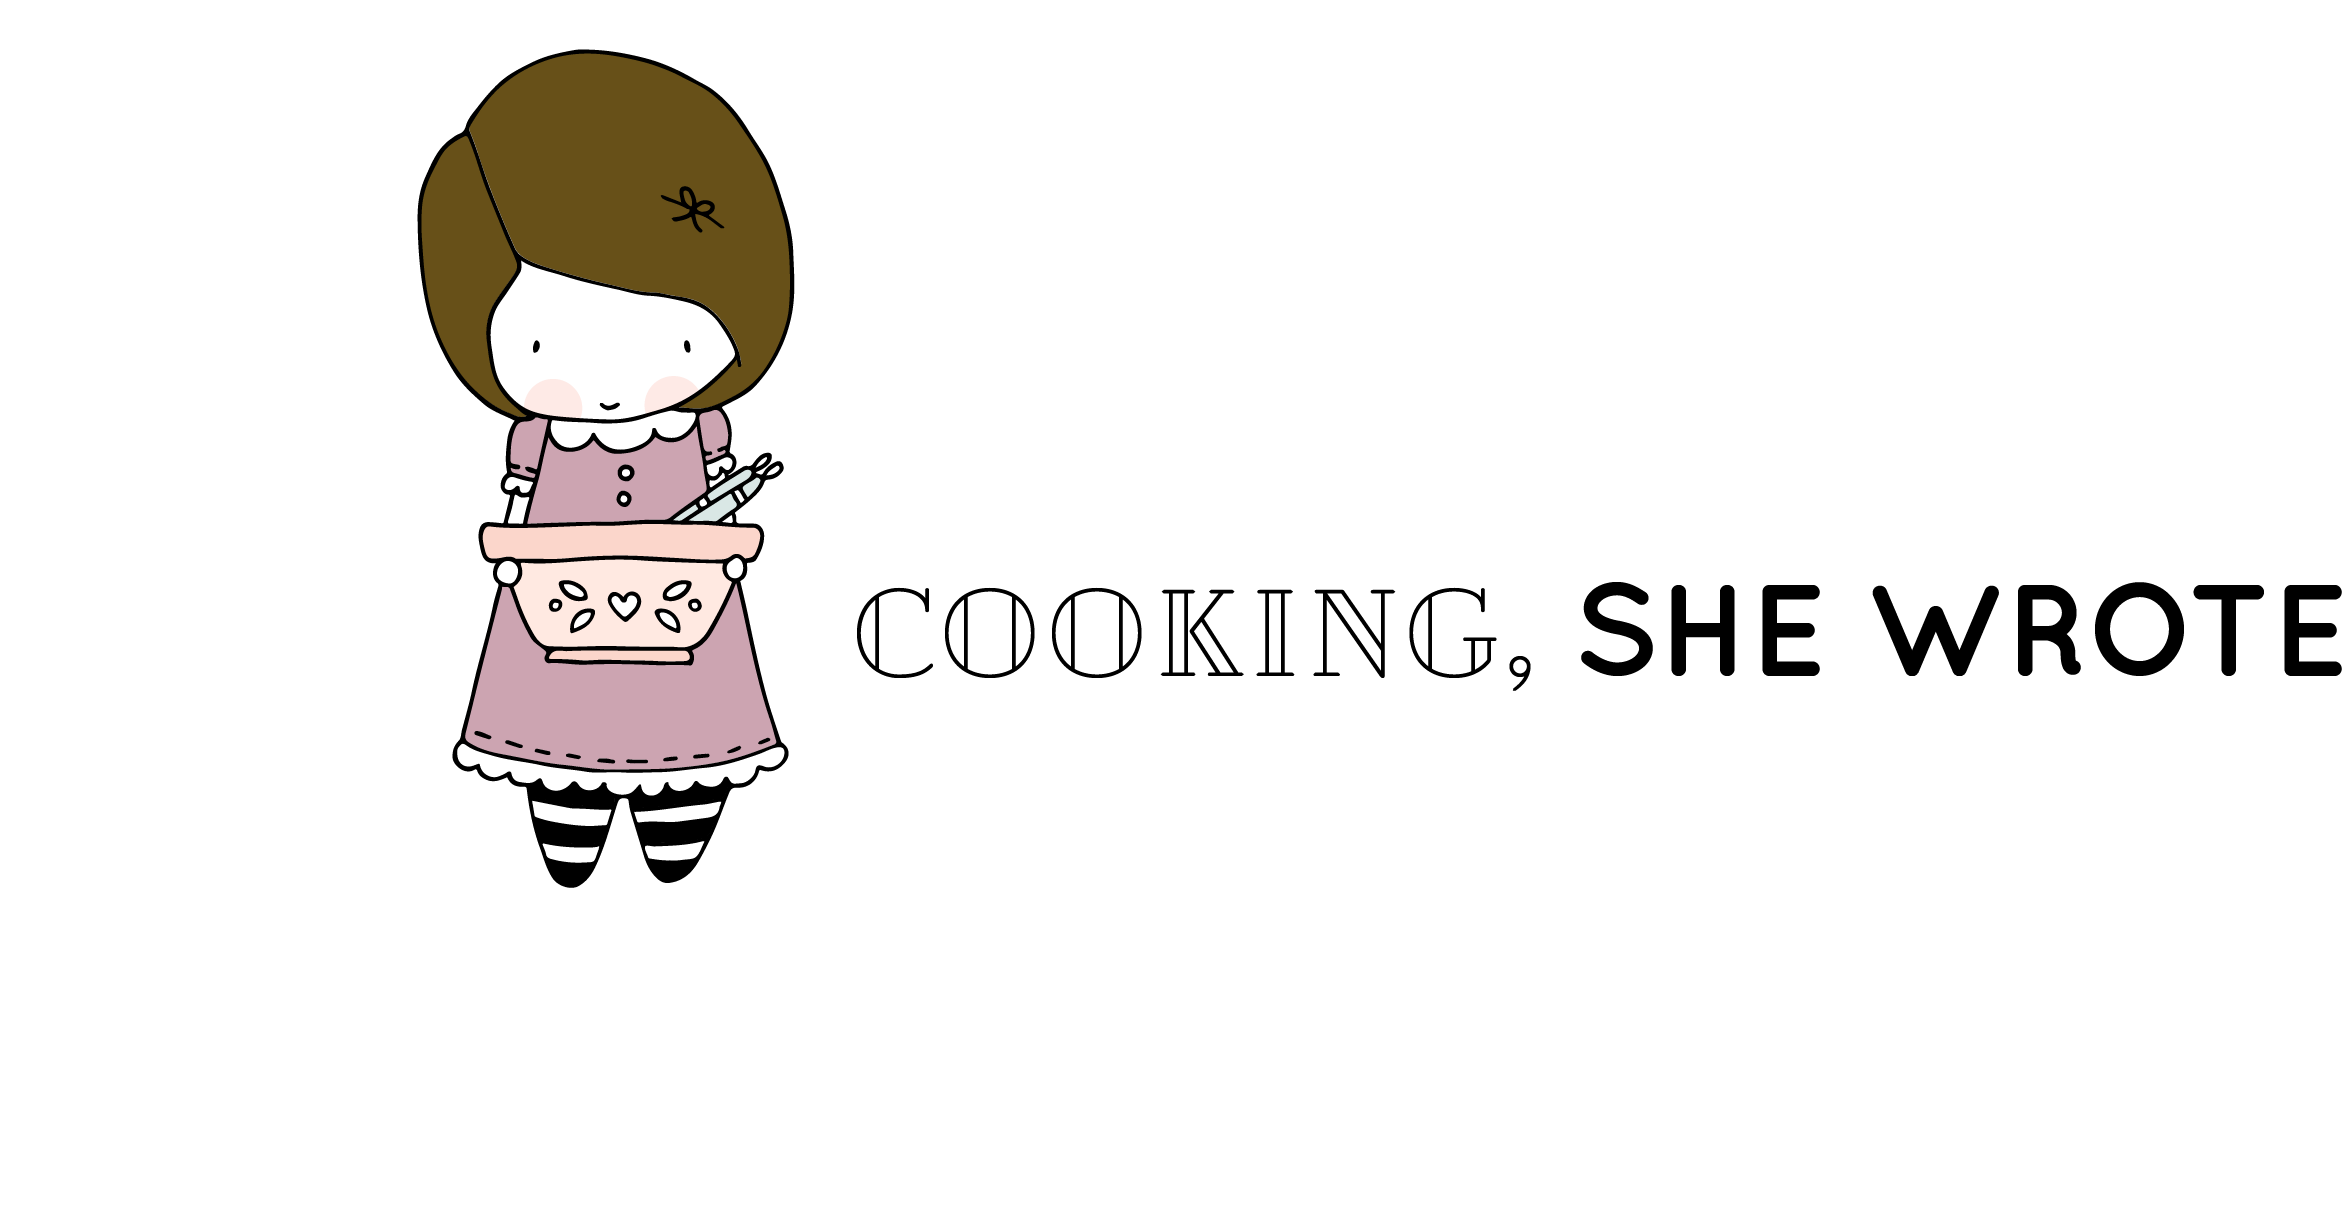 cooking, she wrote